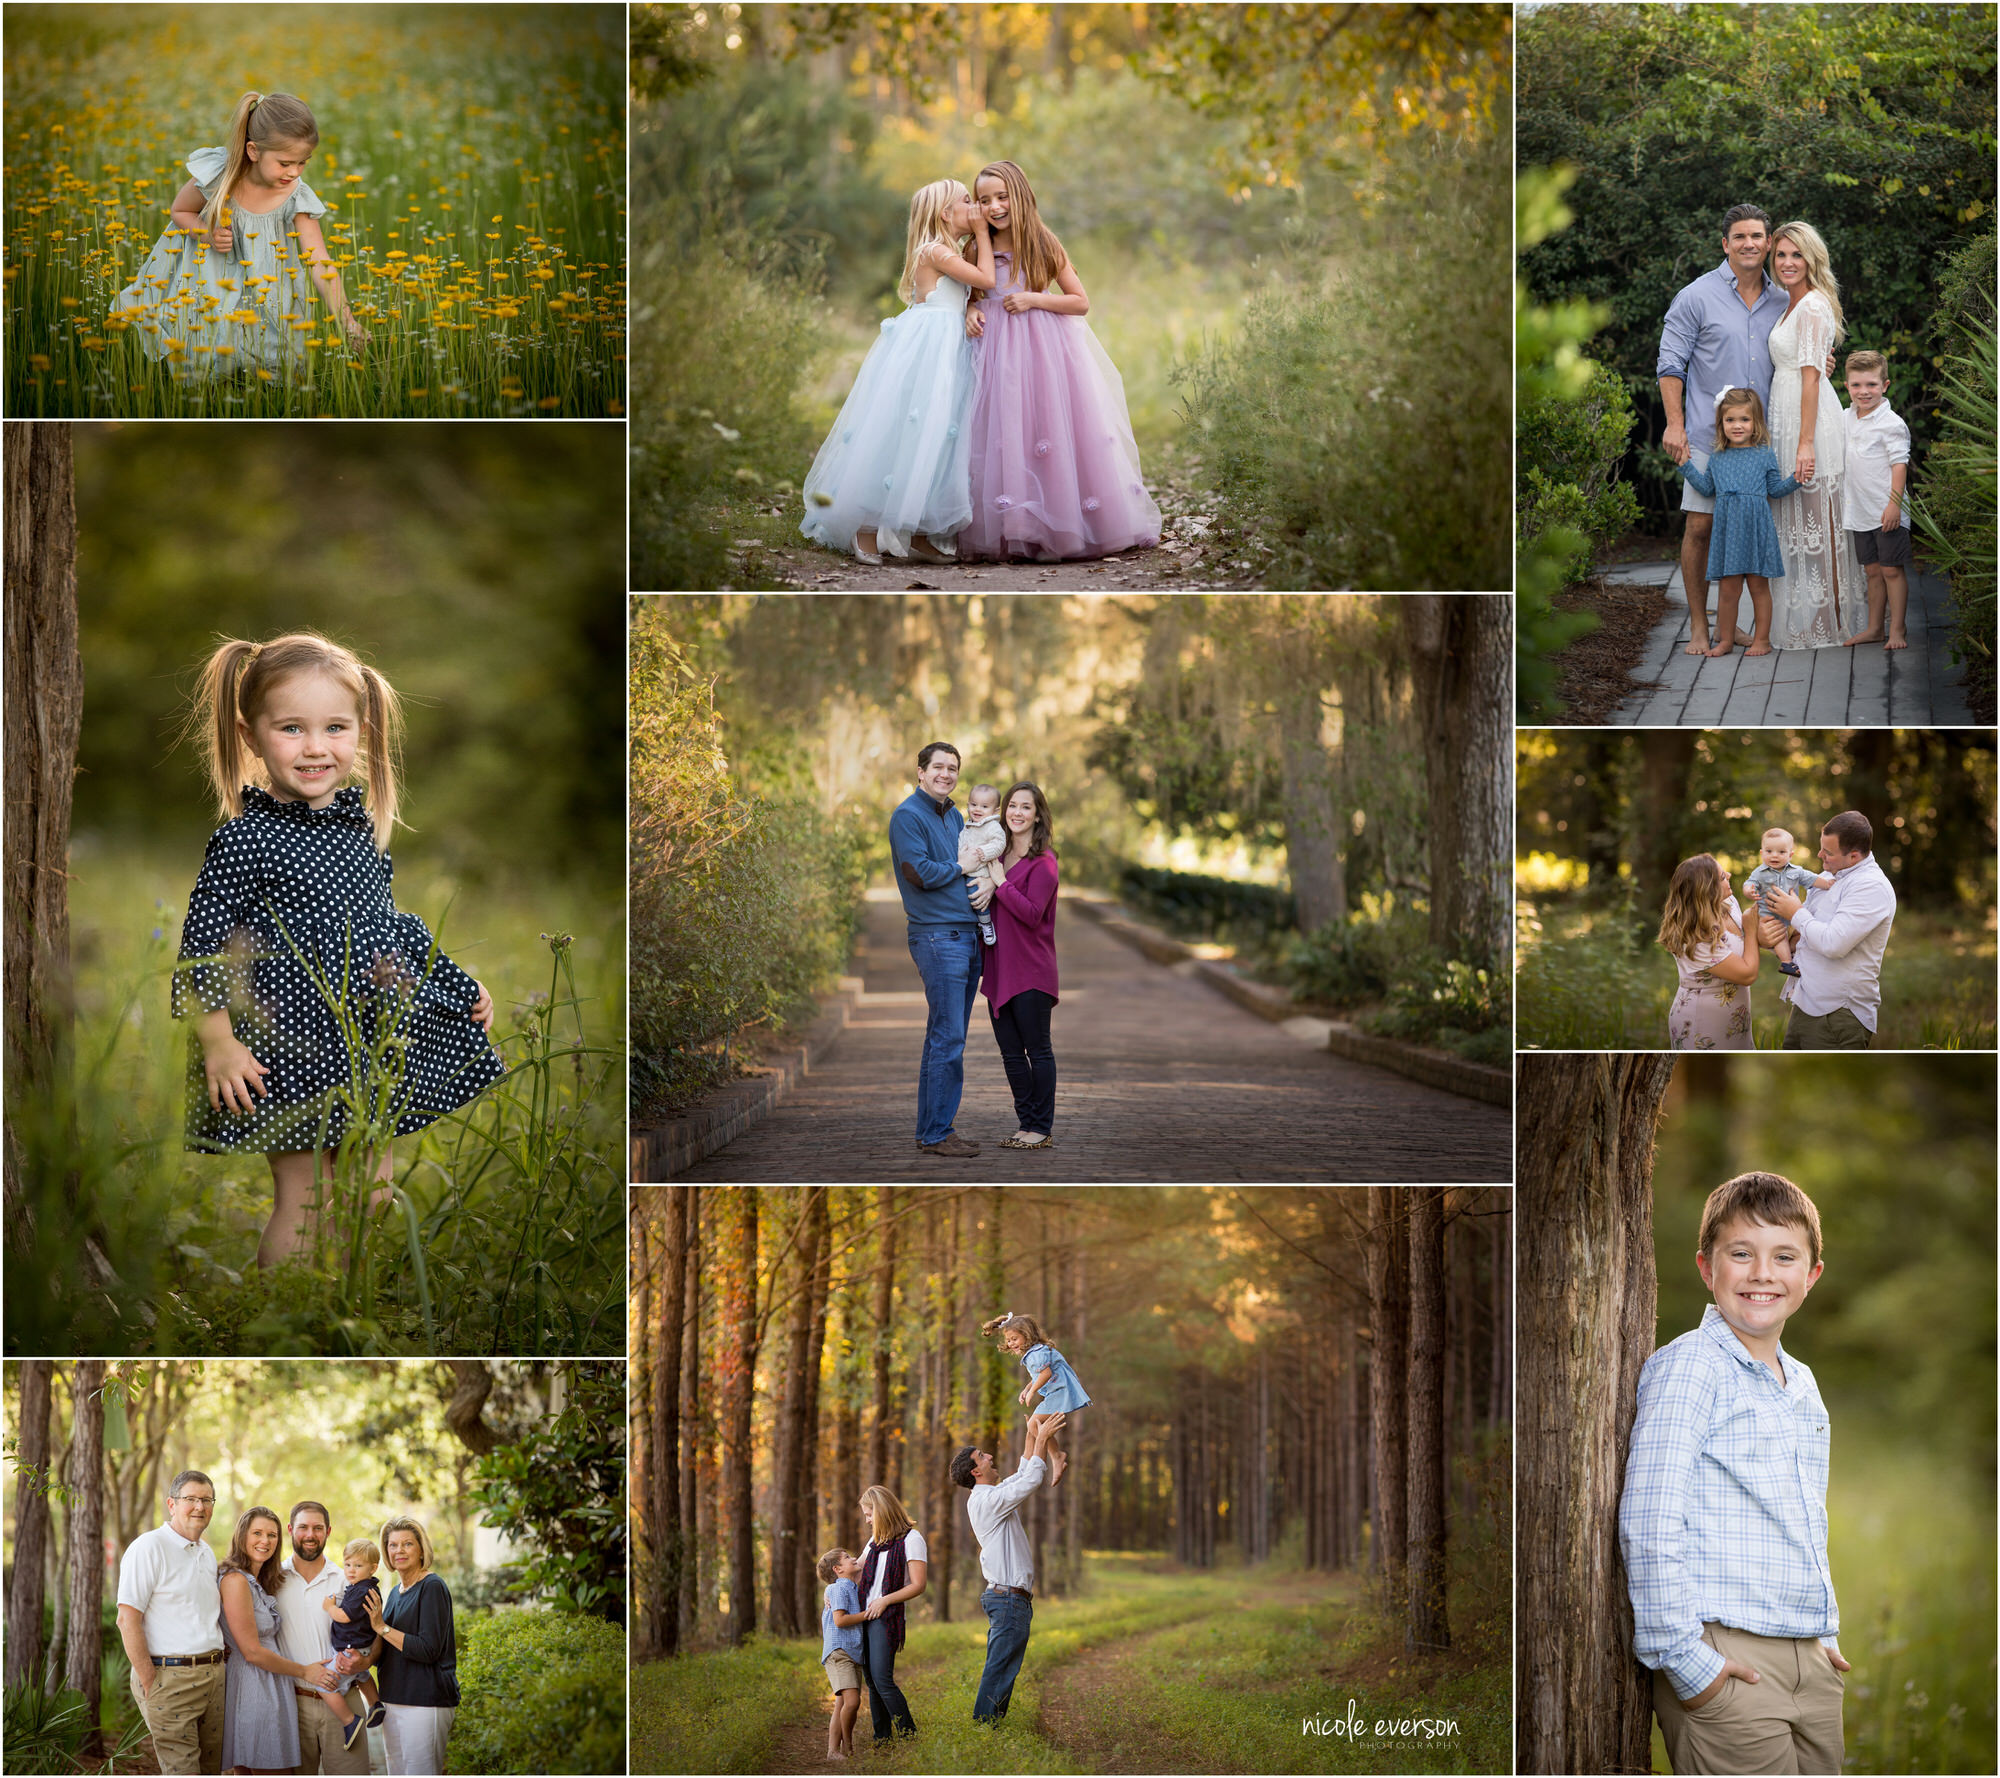 family photos near me in Tallahassee